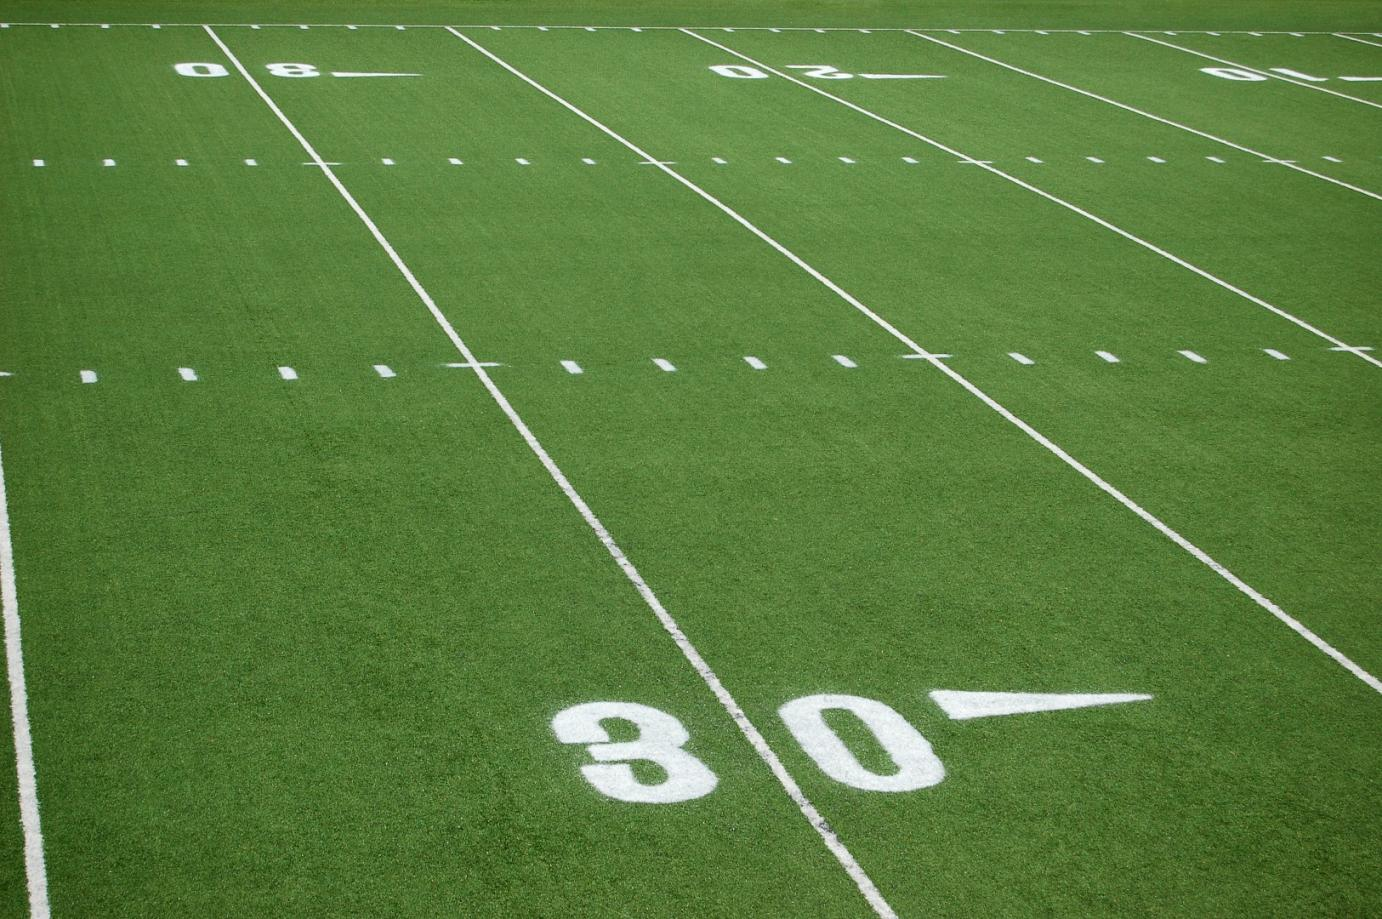 syntheticgrass High School - New Turf Sports Fields